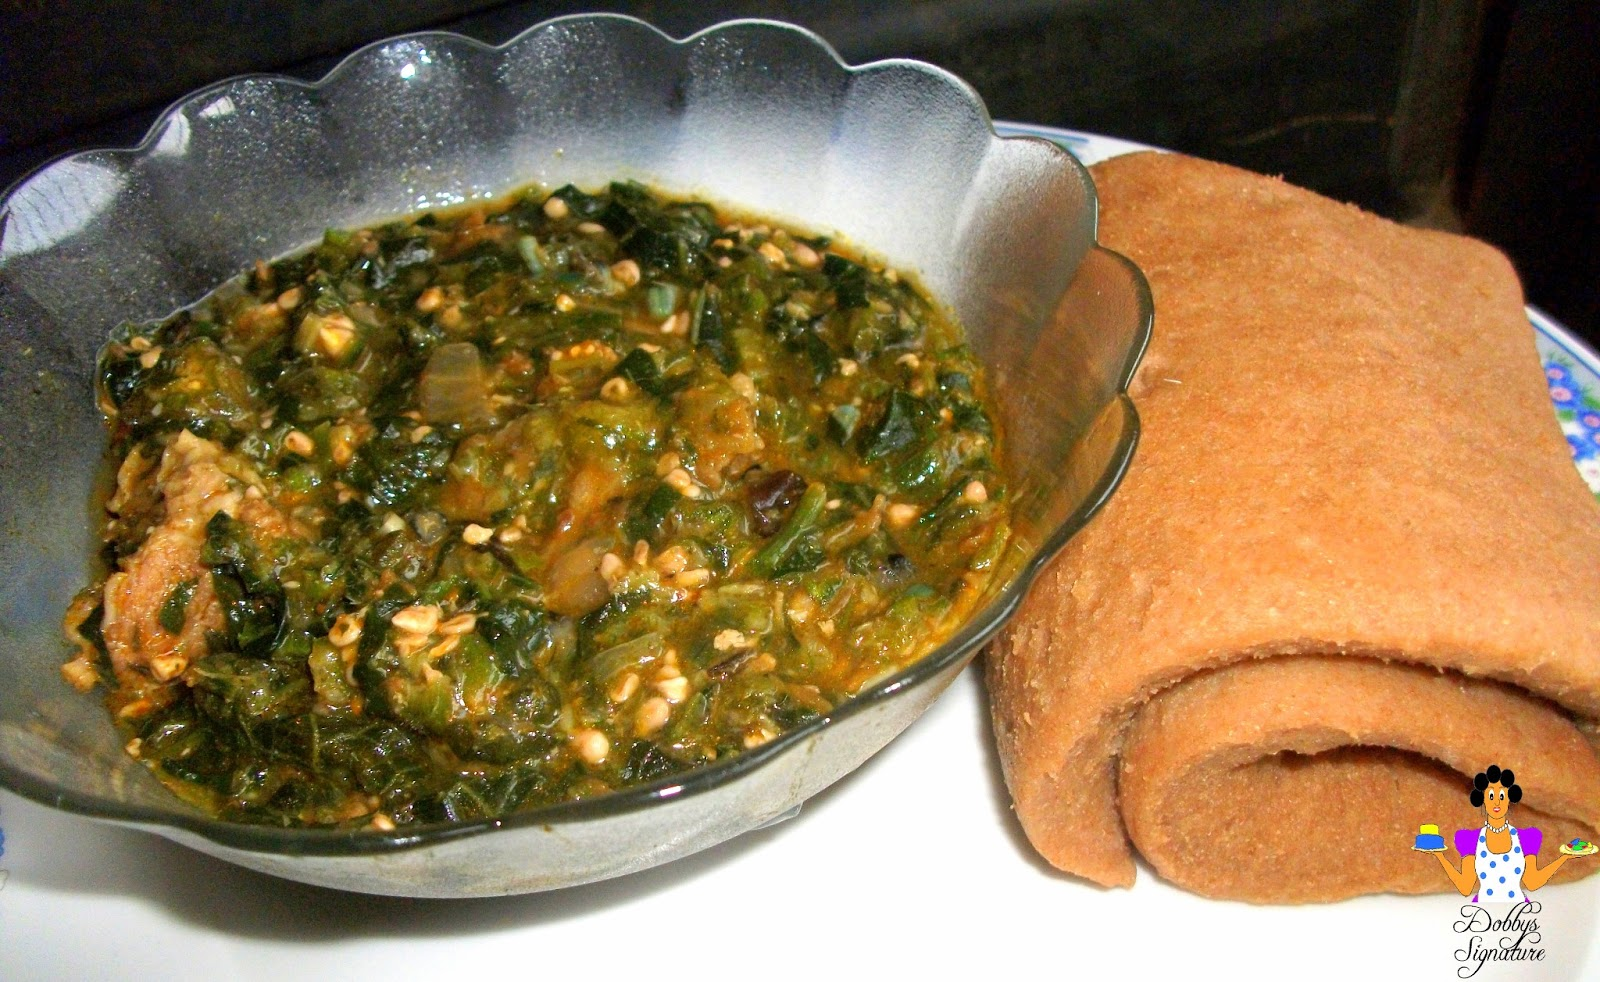 Dobbys signature nigerian food blog i nigerian food recipes i okra soup with black fungus mushrooms forumfinder Choice Image